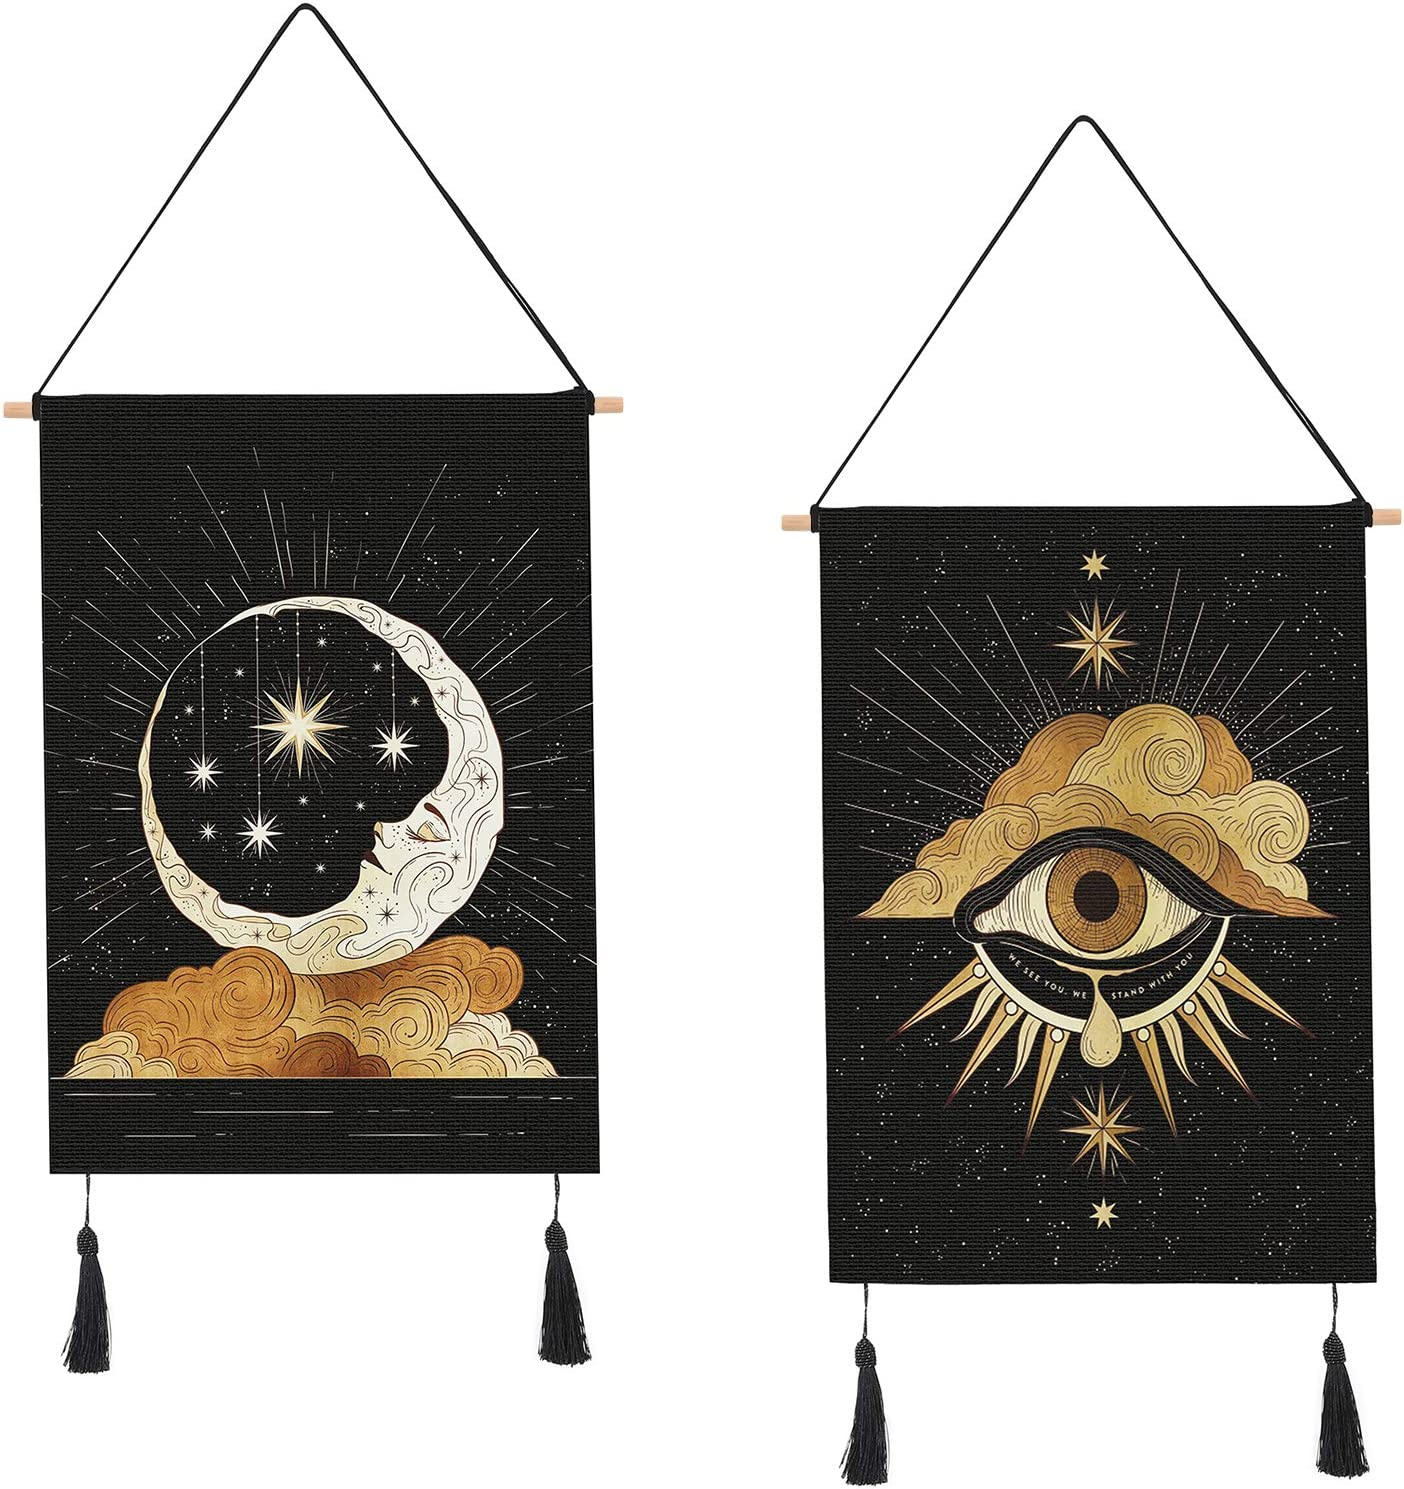 AWAYTR 2Pcs Small Tapestry Wall Hanging - Sun and Moon Tapestry for Room Apartment Decor (Witness,14 x 20 in)